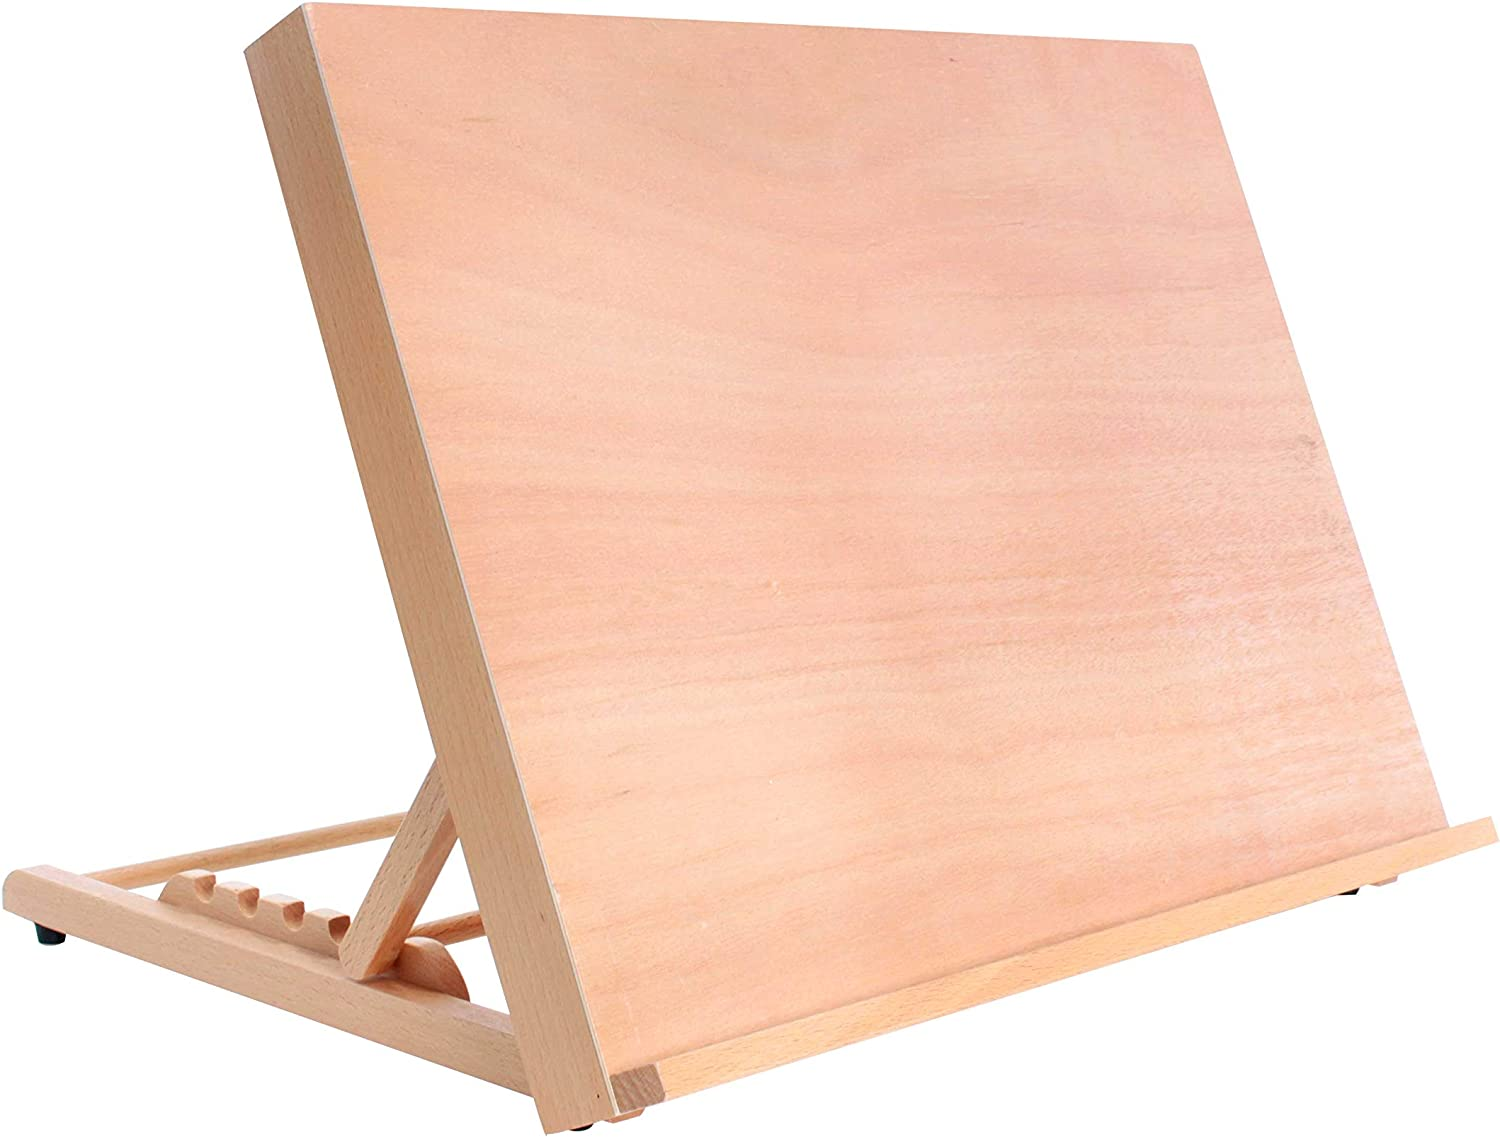 "U.S. Art Supply Large 18-1/2"" Wide x 14-1/8"" (A3) Tall Artist Adjustable Wood Drawing Board"